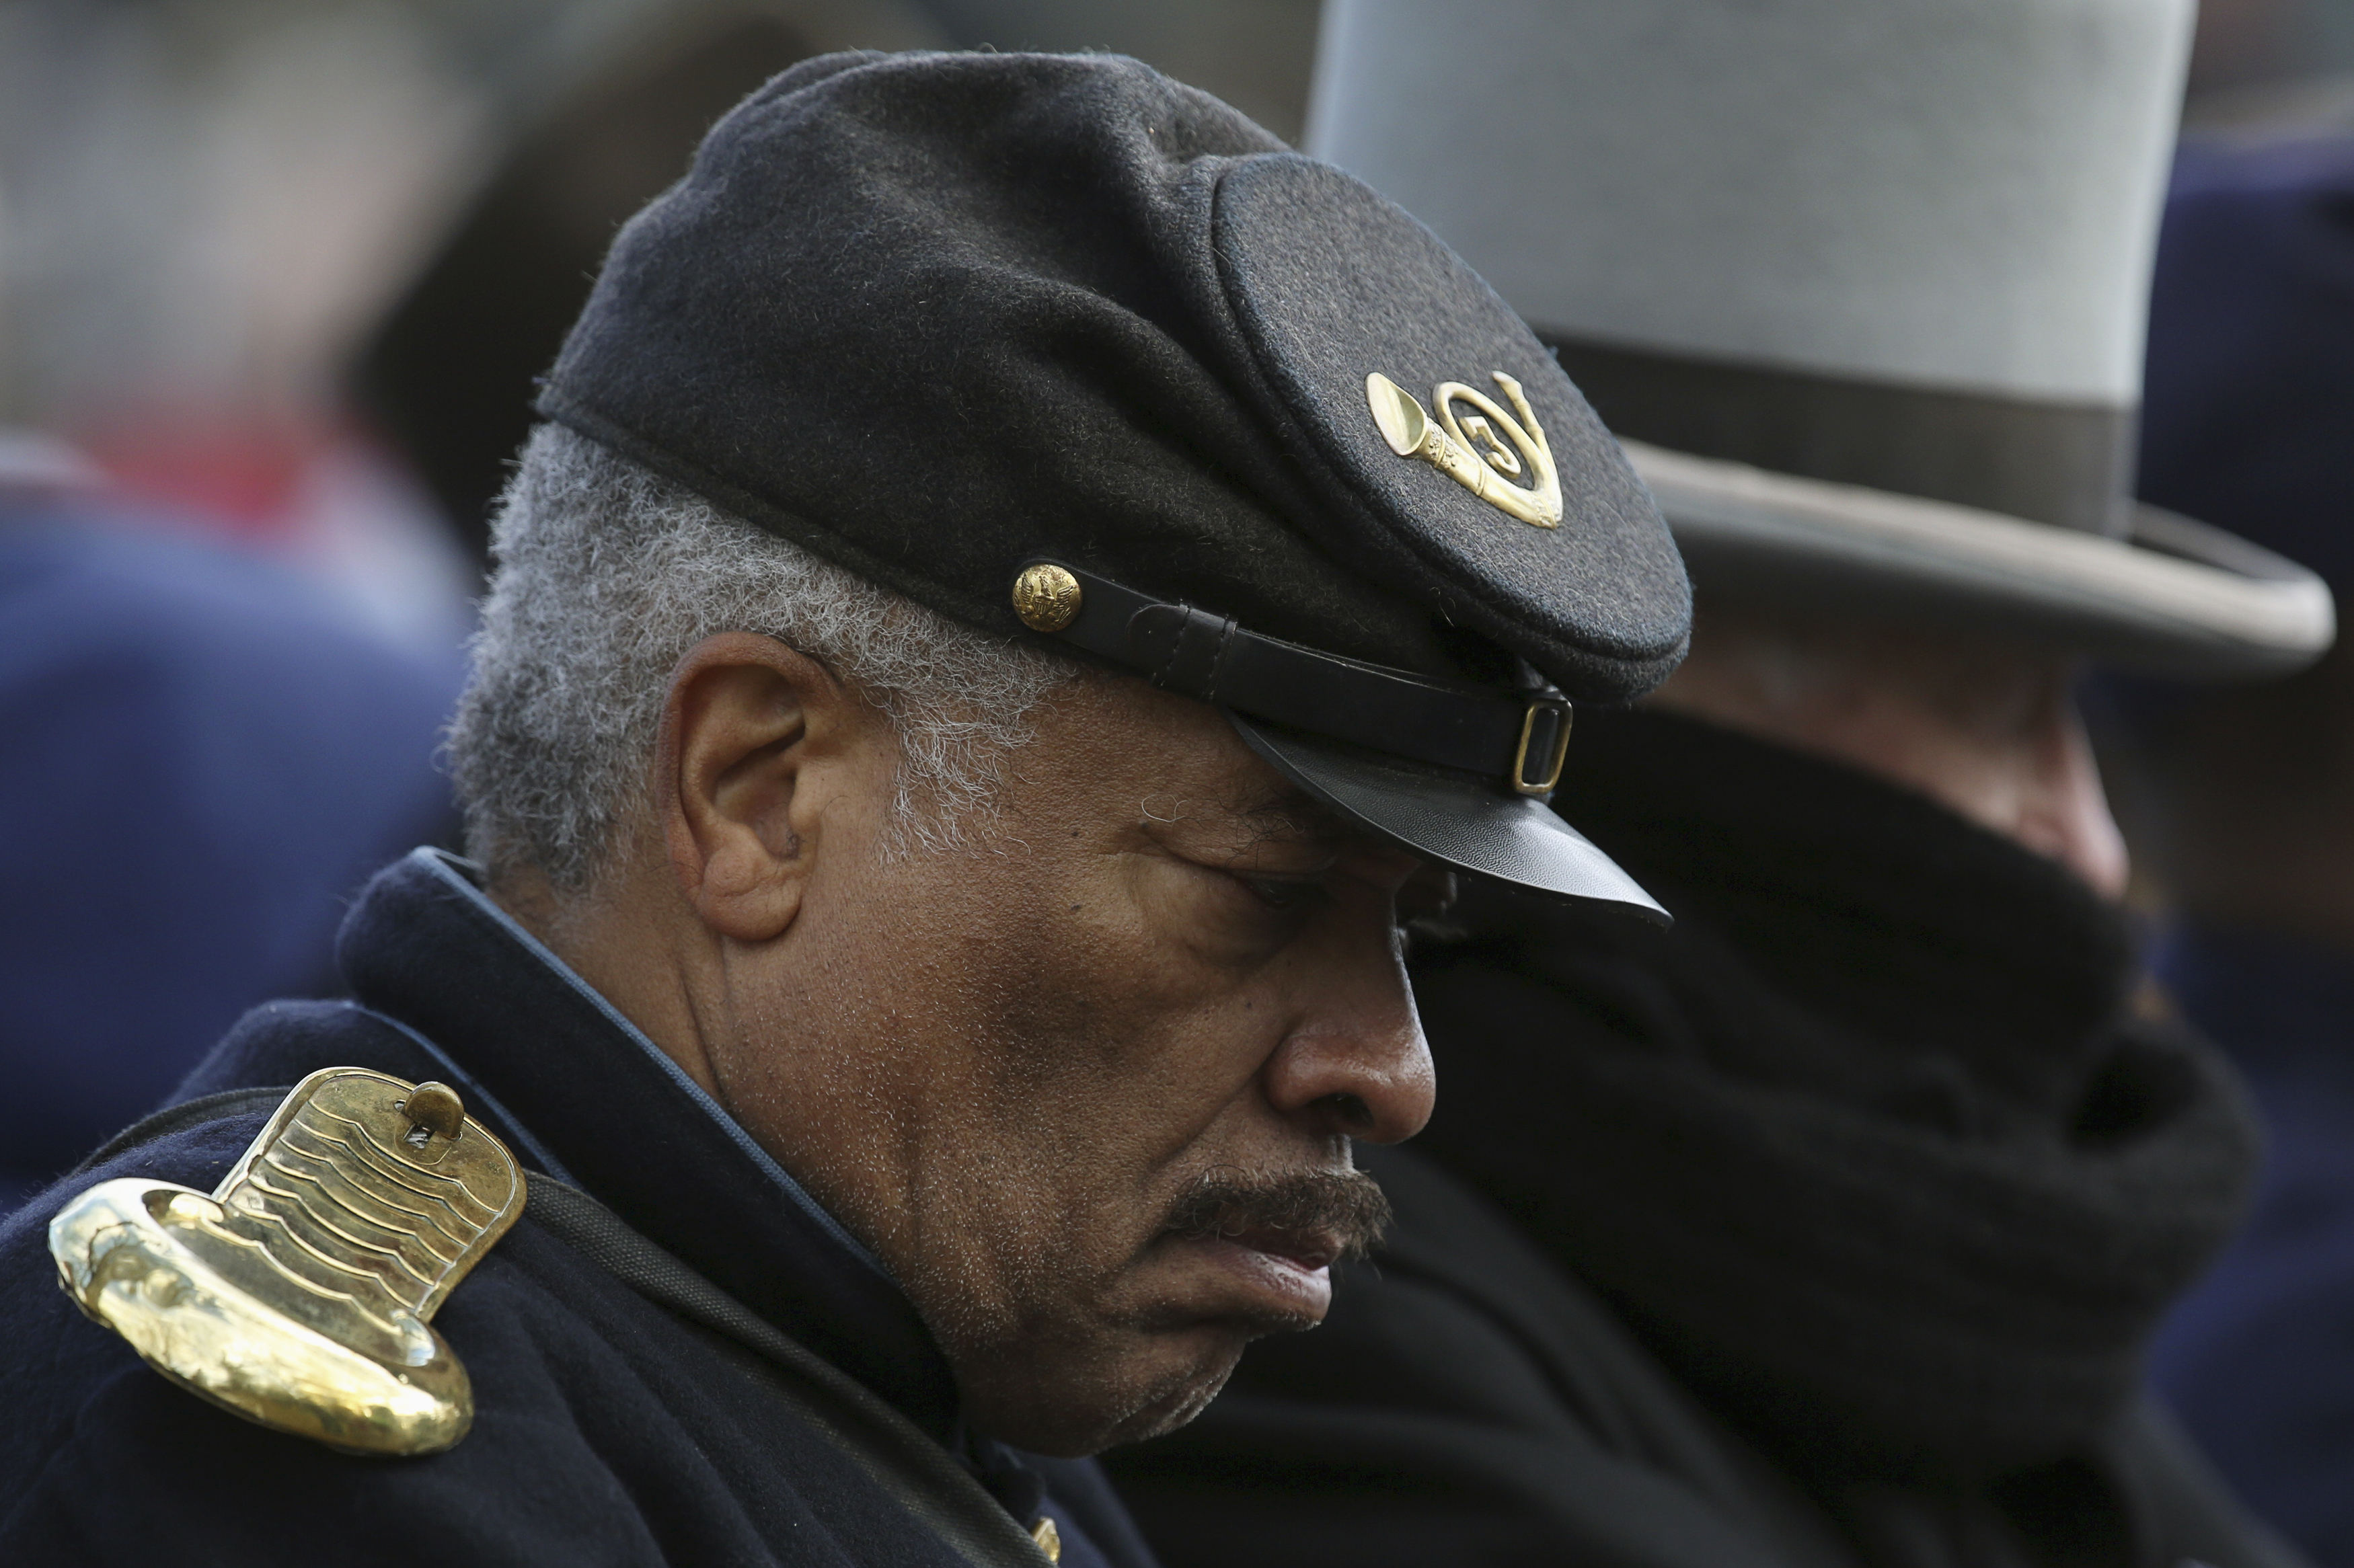 A re-enactor, portraying a member of the U.S. Colored Troops, a black regiment of African-American soldiers during the U.S. Civil War, listens to speeches at the Gettysburg National Cemetery in Pennsylvania November 19, 2013. U.S. President Abraham Lincoln travelled to in 1863 to deliver a few concluding remarks at a formal dedication at the cemetery. Today marks the 150th anniversary of Lincoln's famous two-minute speech, the Gettysburg Address. REUTERS/Gary Cameron